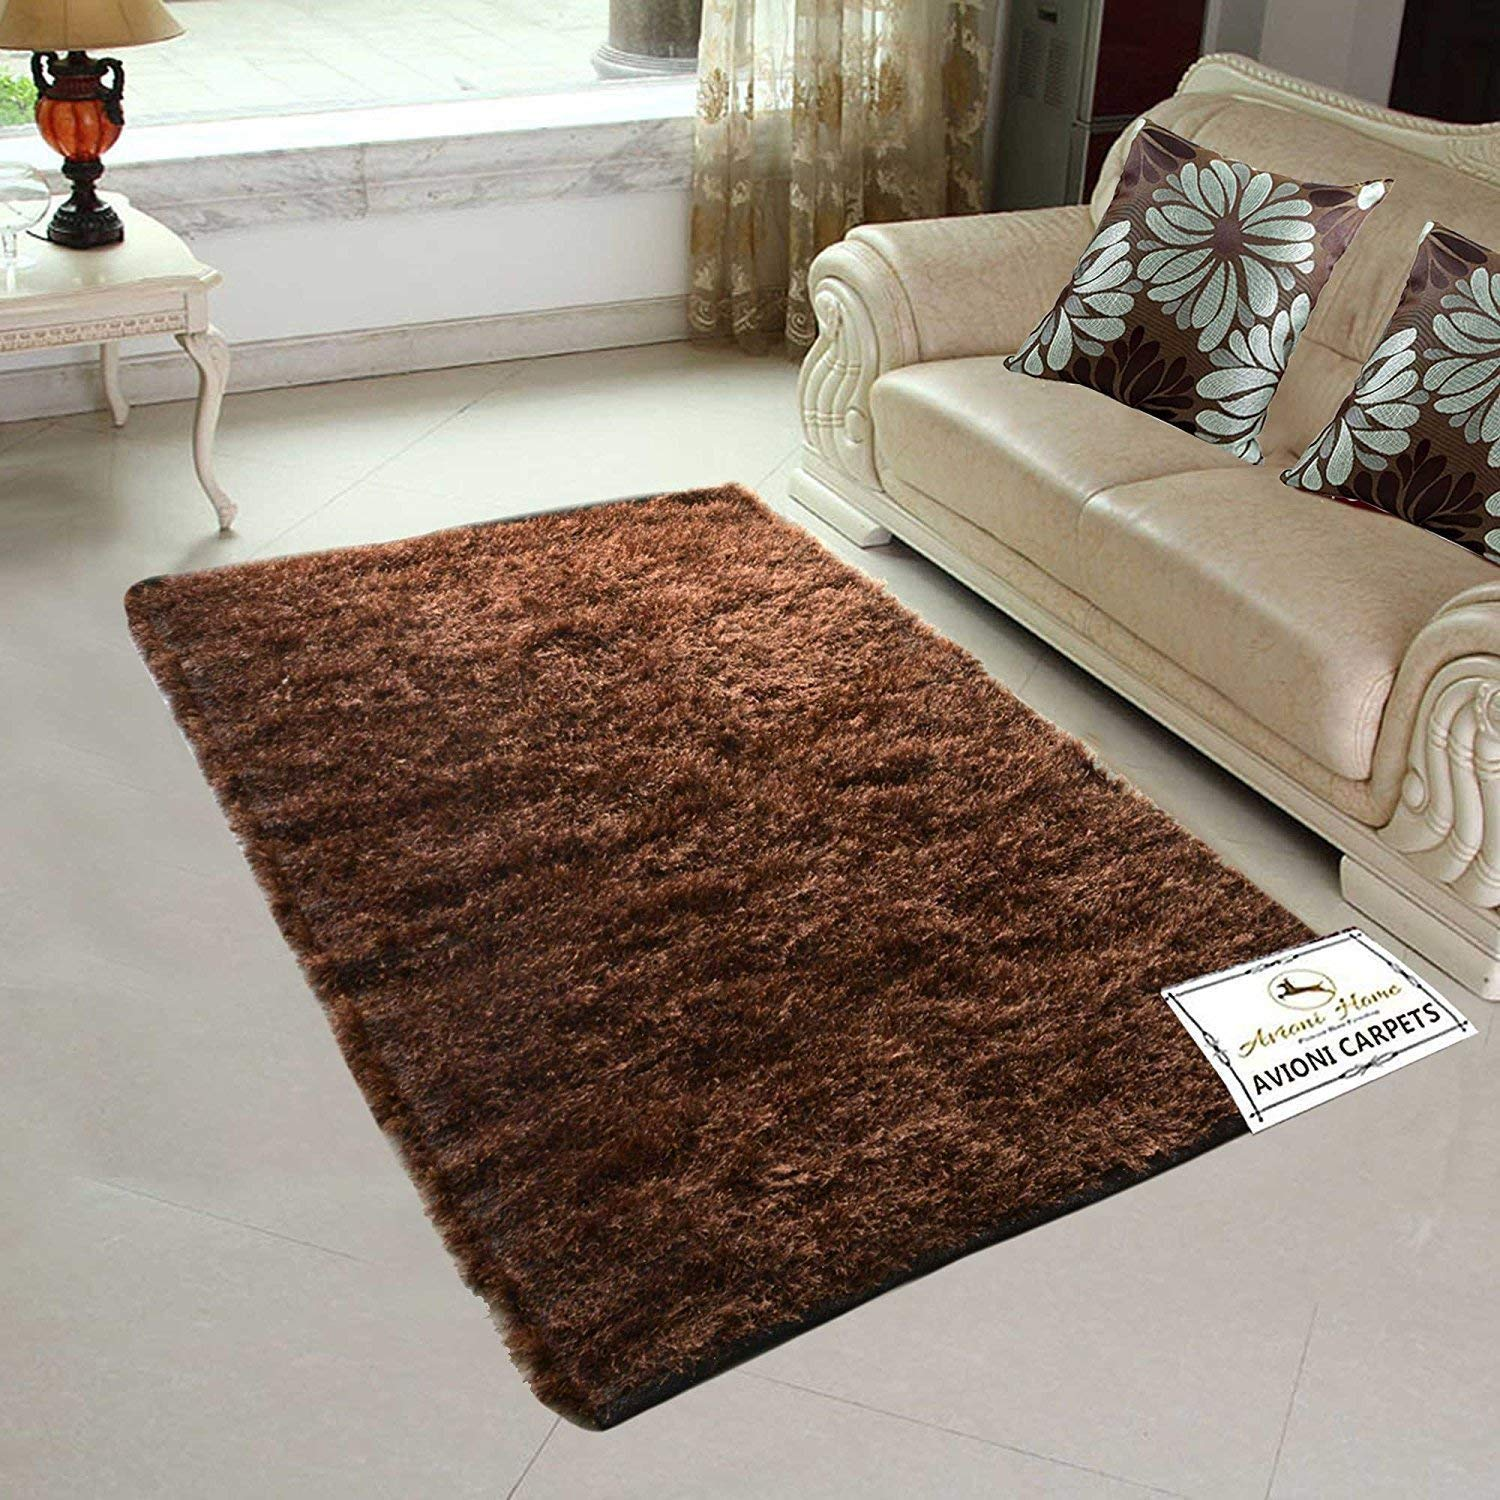 Amazon.com: Avioni Handloom Rugs Carpets for Living Room in ...